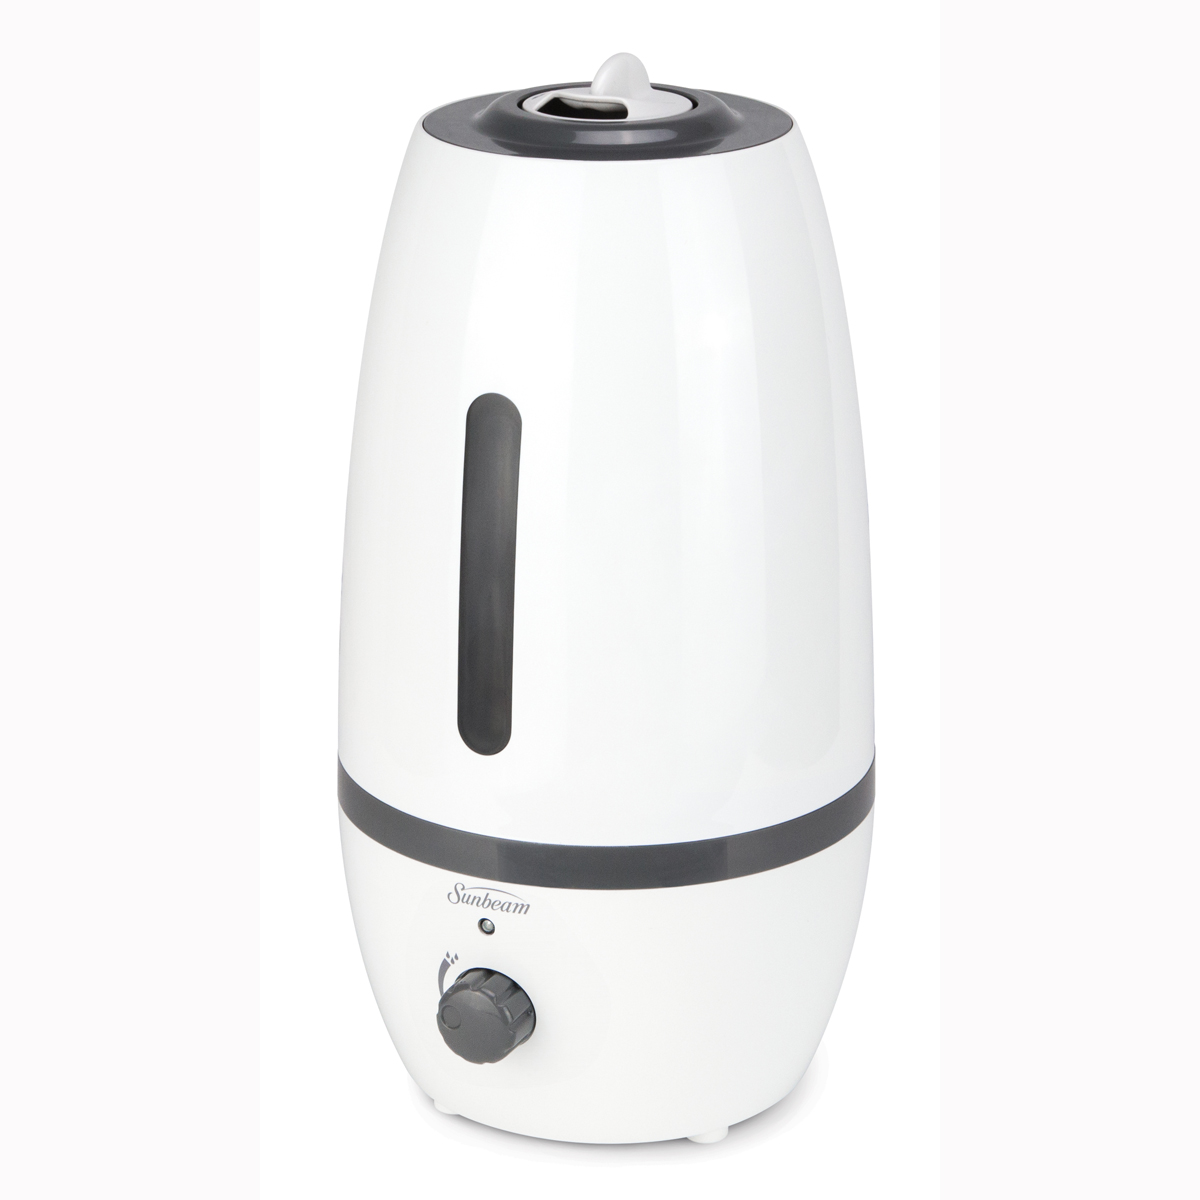 Sunbeam® Ultrasonic Cool Mist Humidifier SUL1410 CN Sunbeam  #5B6370